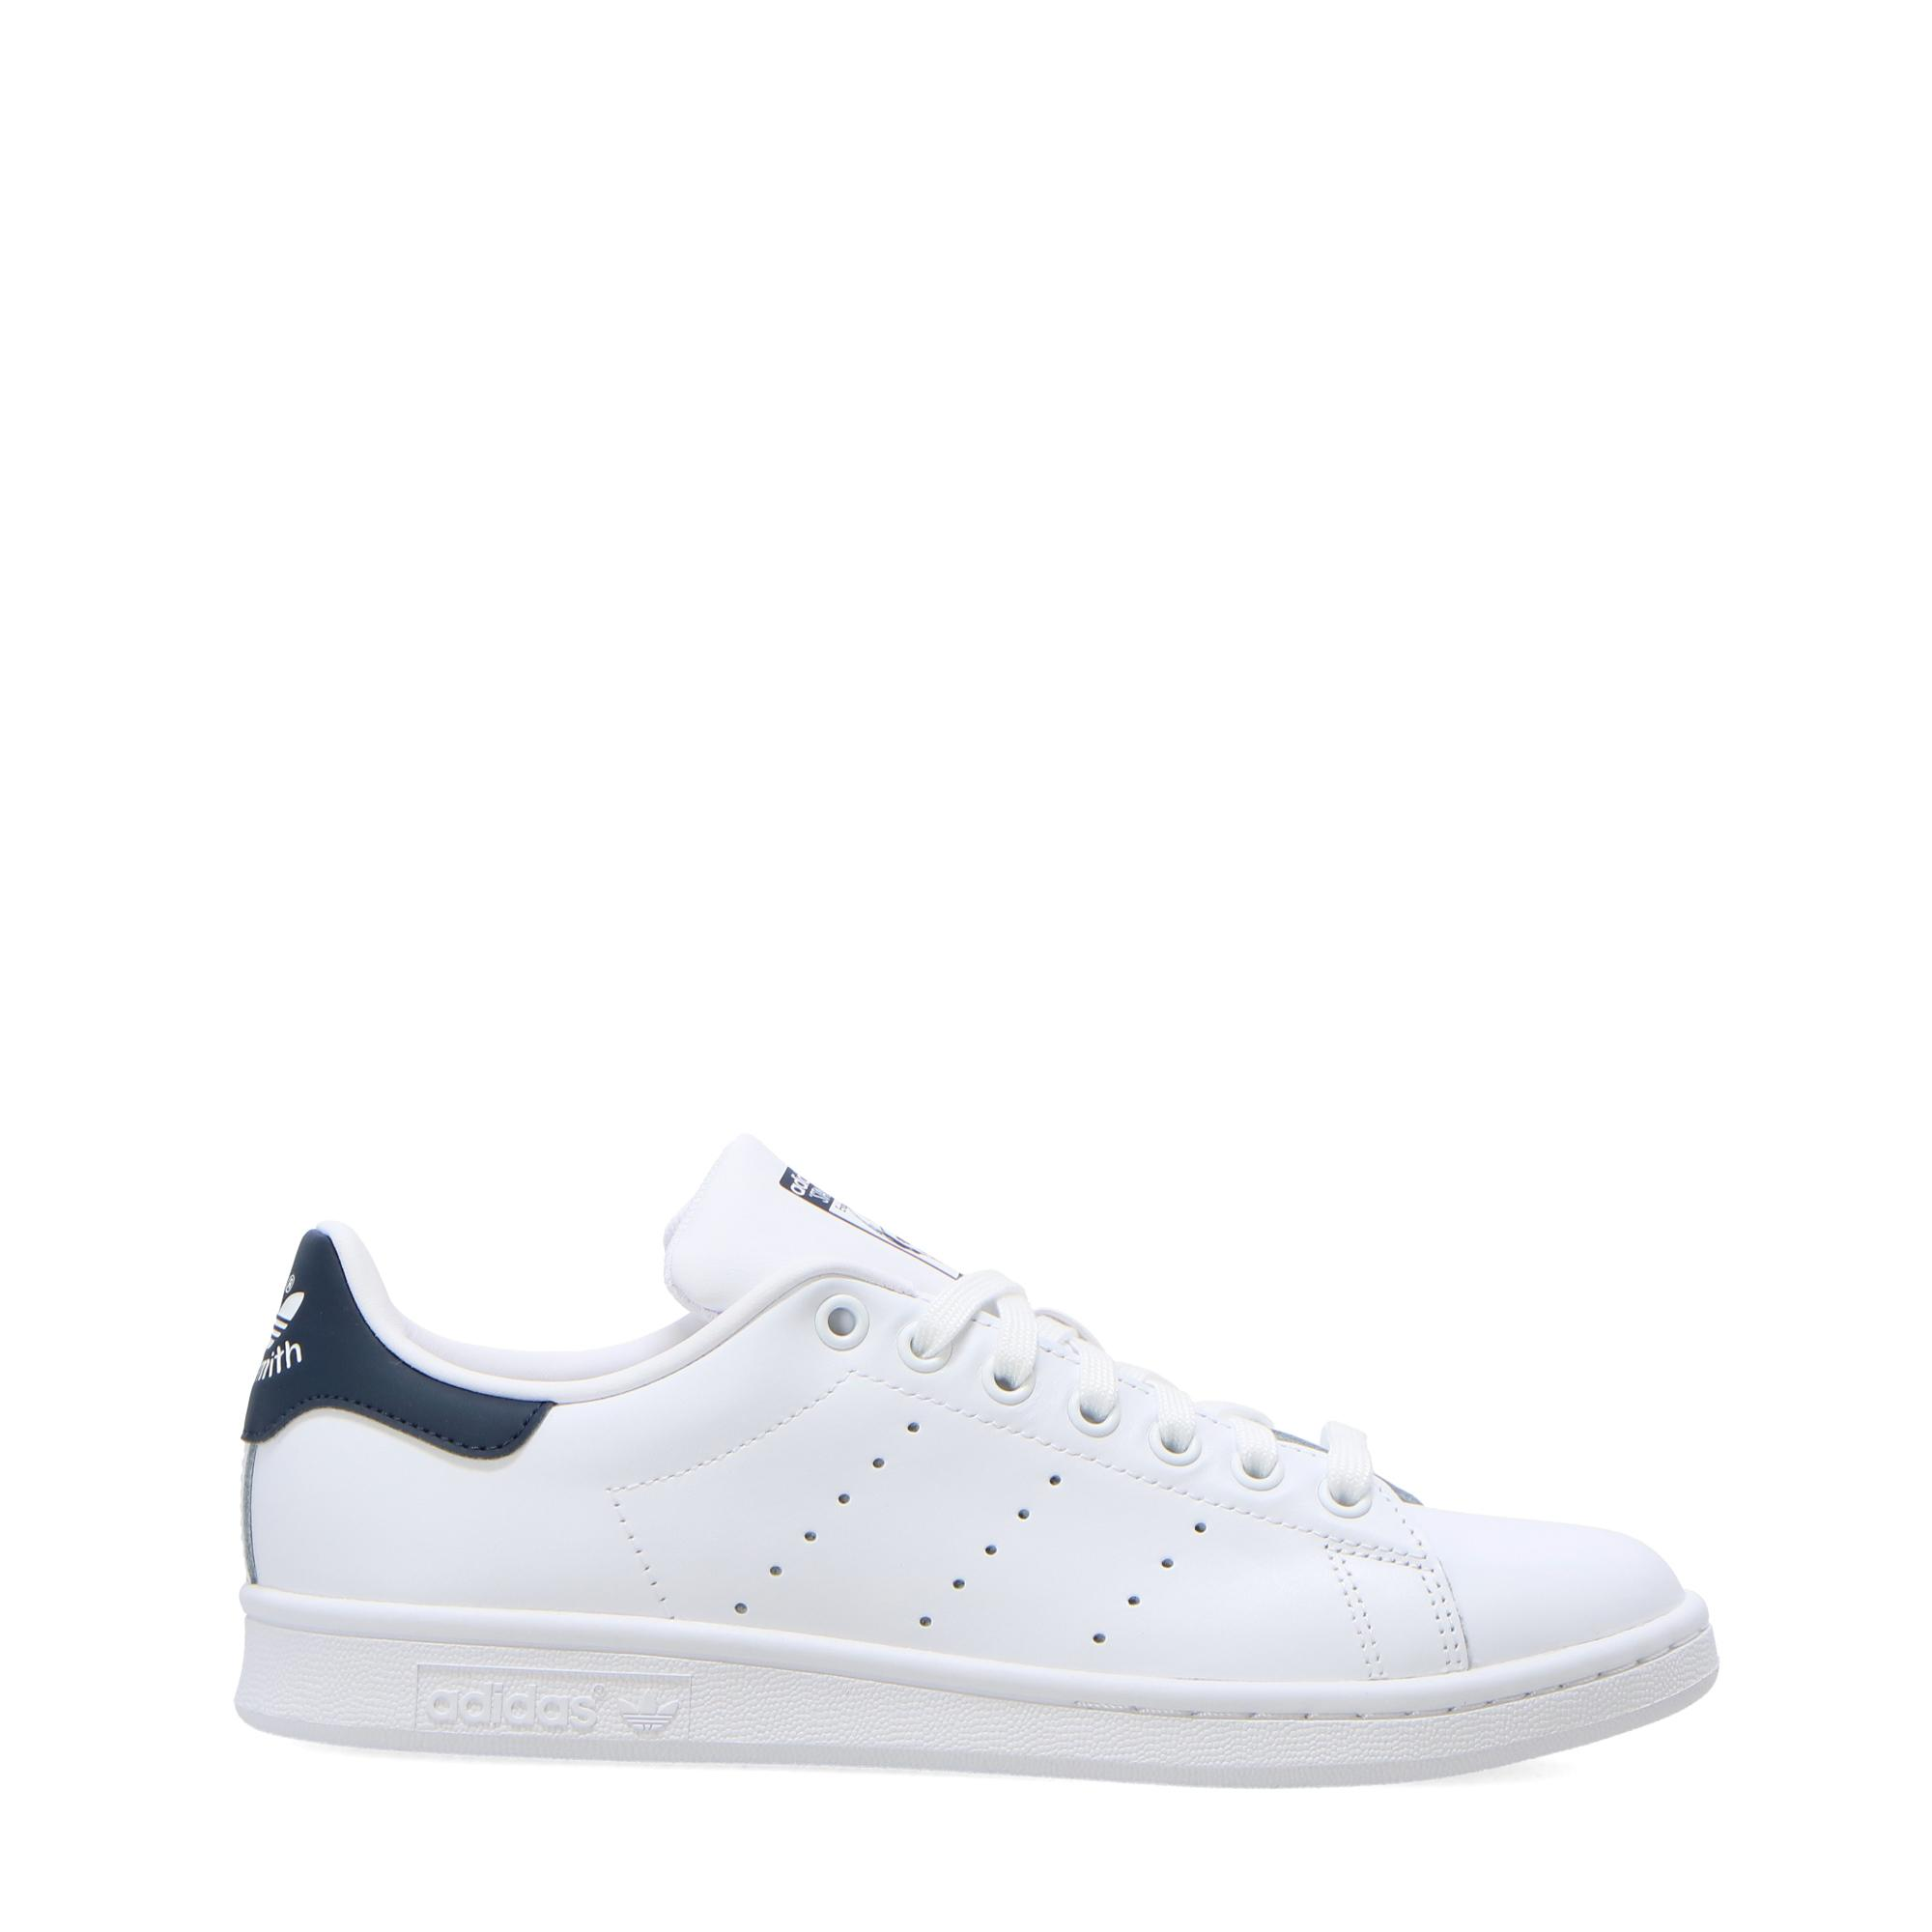 new style d5eea d0872 ADIDAS STAN SMITH